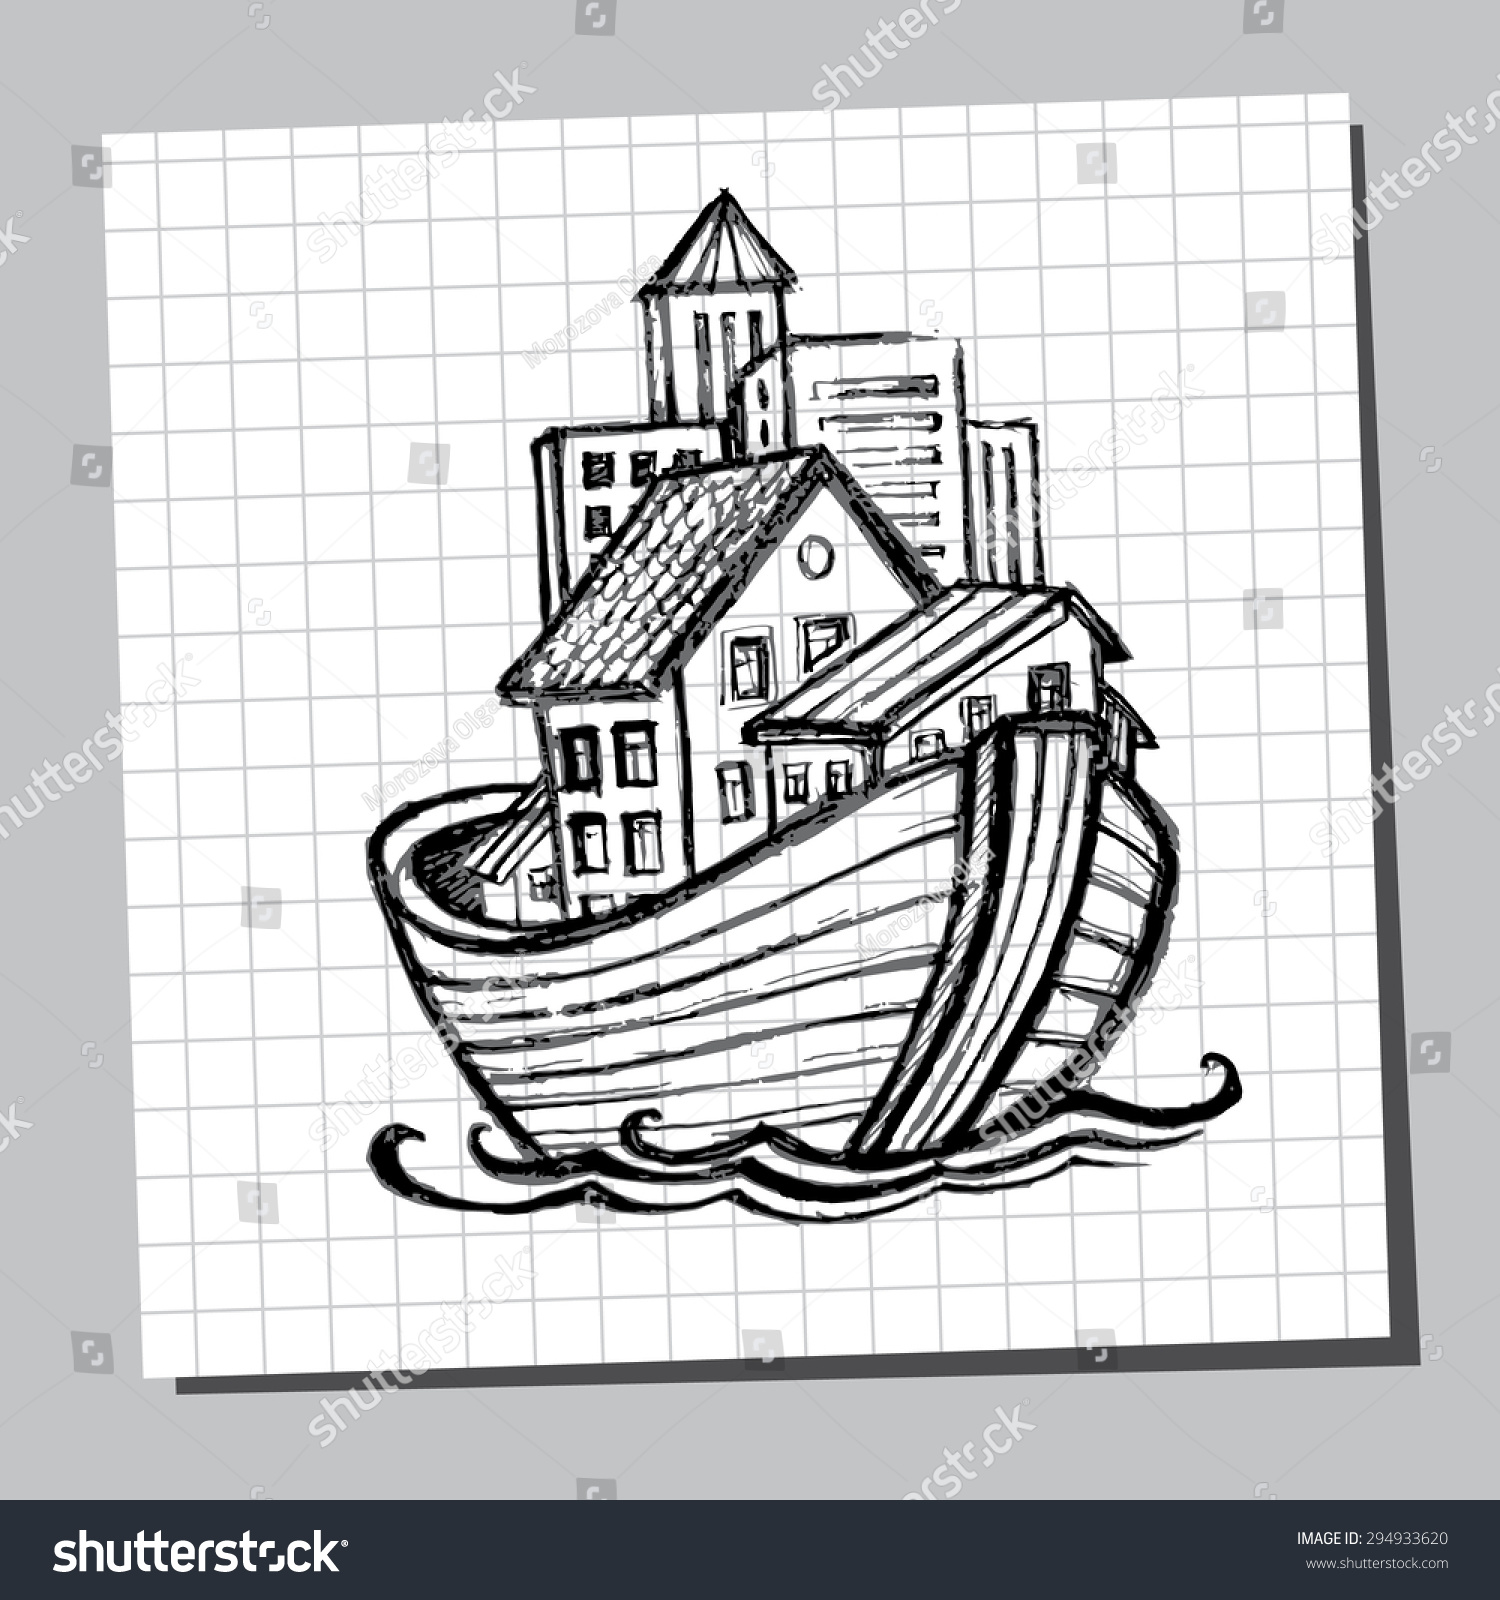 noahs ark line drawing picture tourism stock vector  picture for tourism cruises real estate s moving